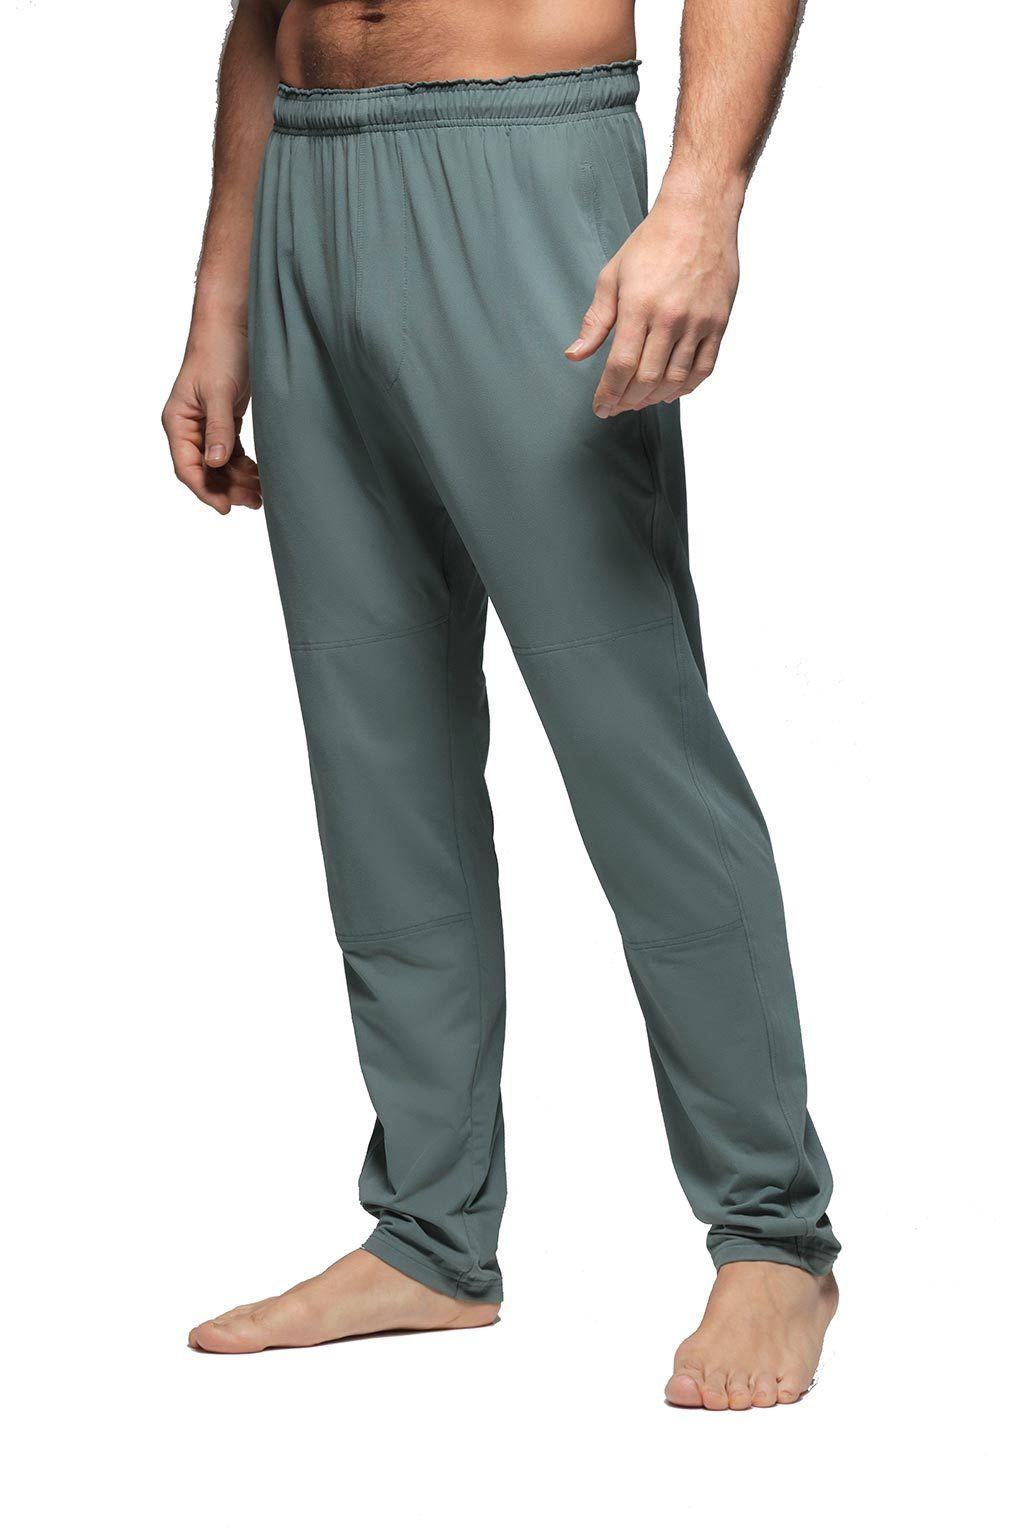 Men's Slim-Leg Jogger Loungewear - Graphite